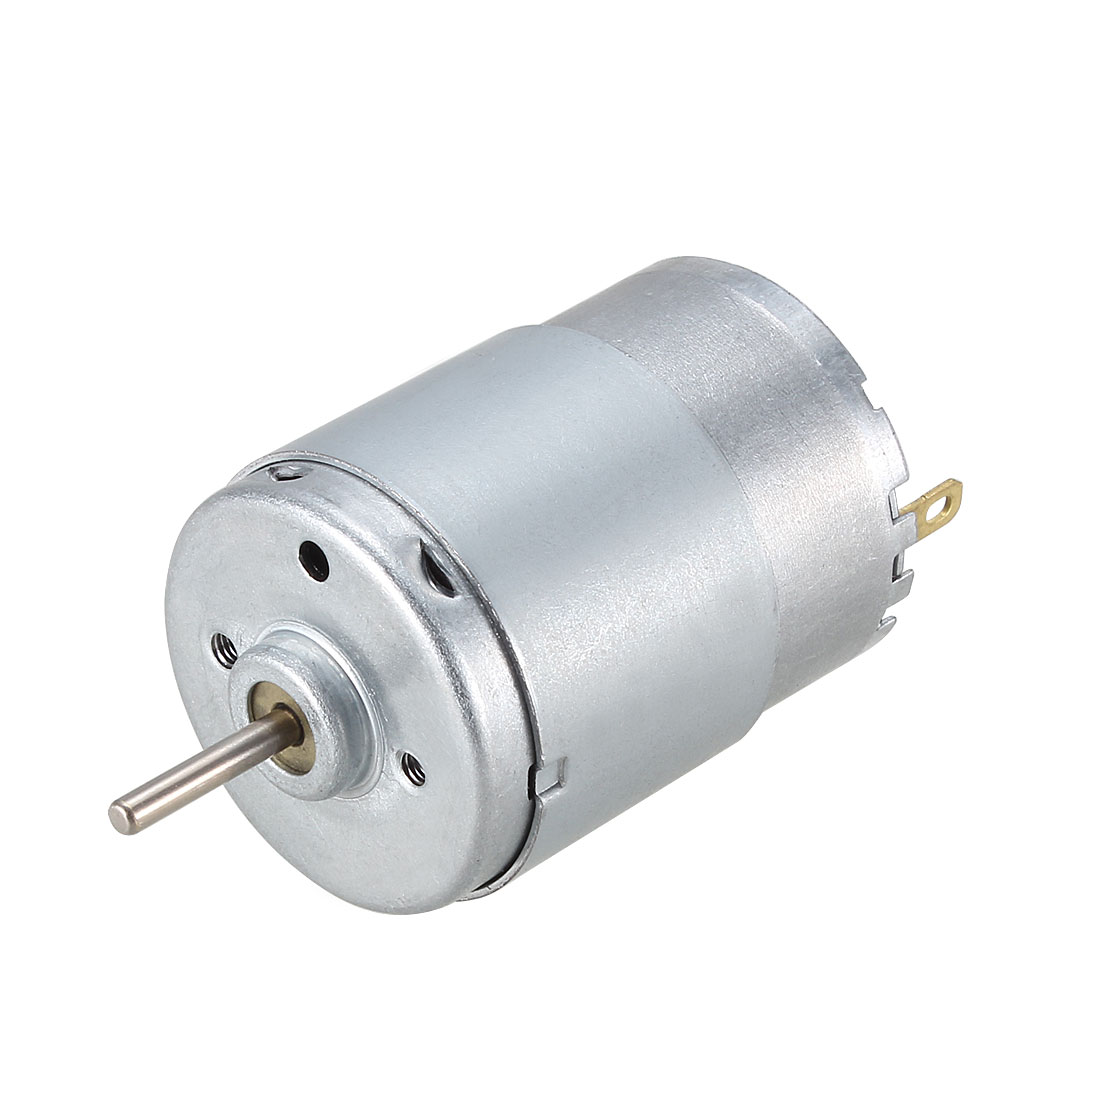 Small Motor DC 24V 7600RPM High Speed Motor for DIY Hobby Toy Car Remote Control